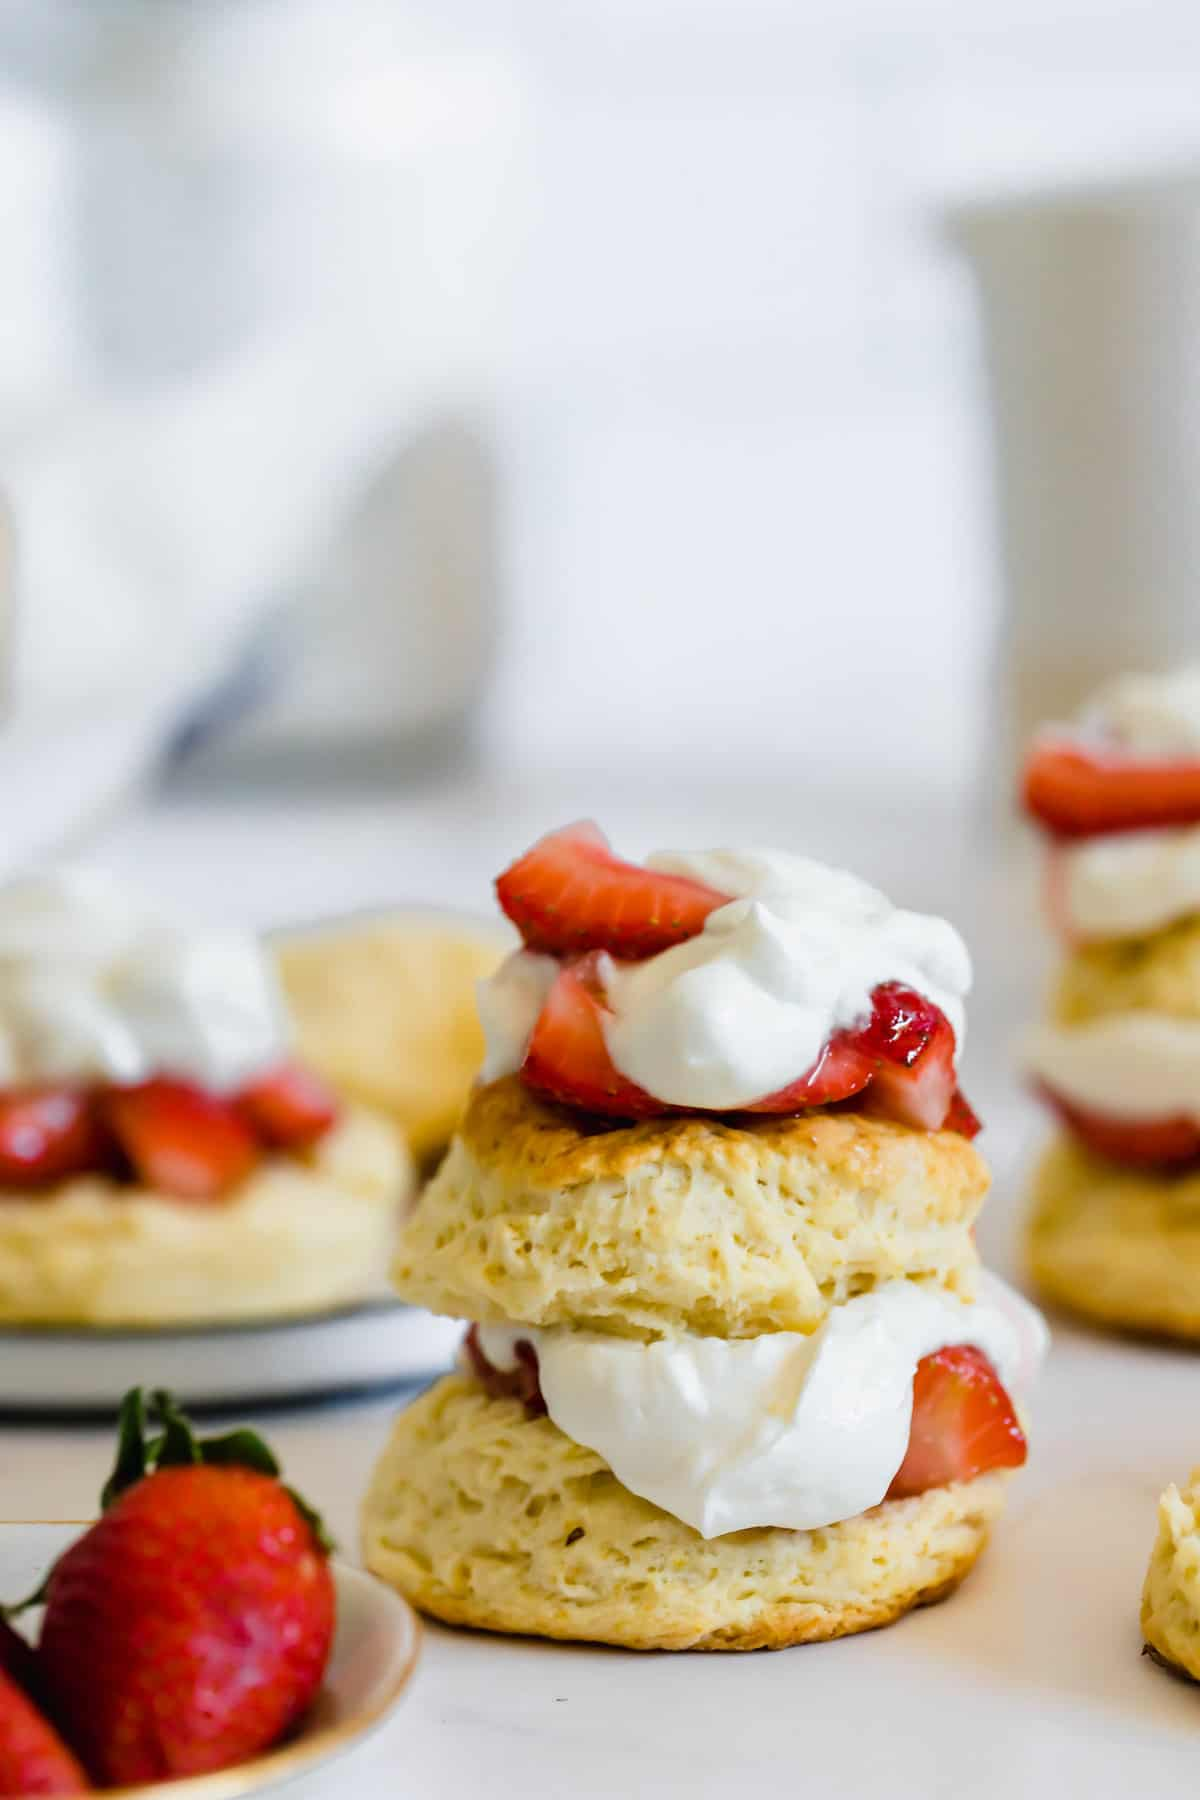 A Strawberry Shortcake Beside a Bowl of Fresh Berries and a Couple Other Shortcakes